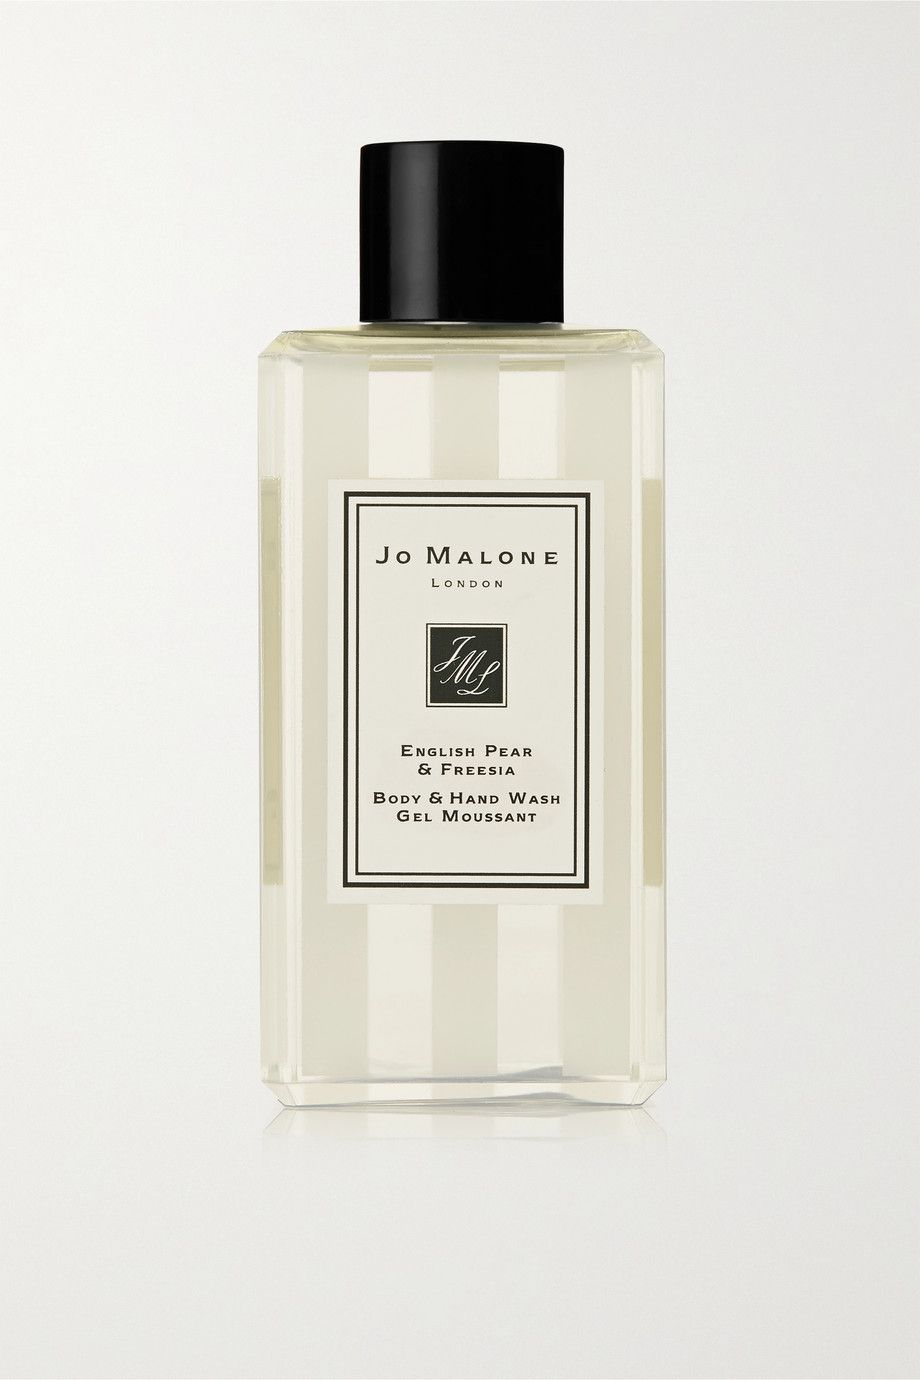 jo-malone-english-pear-freesia-body-hand-wash